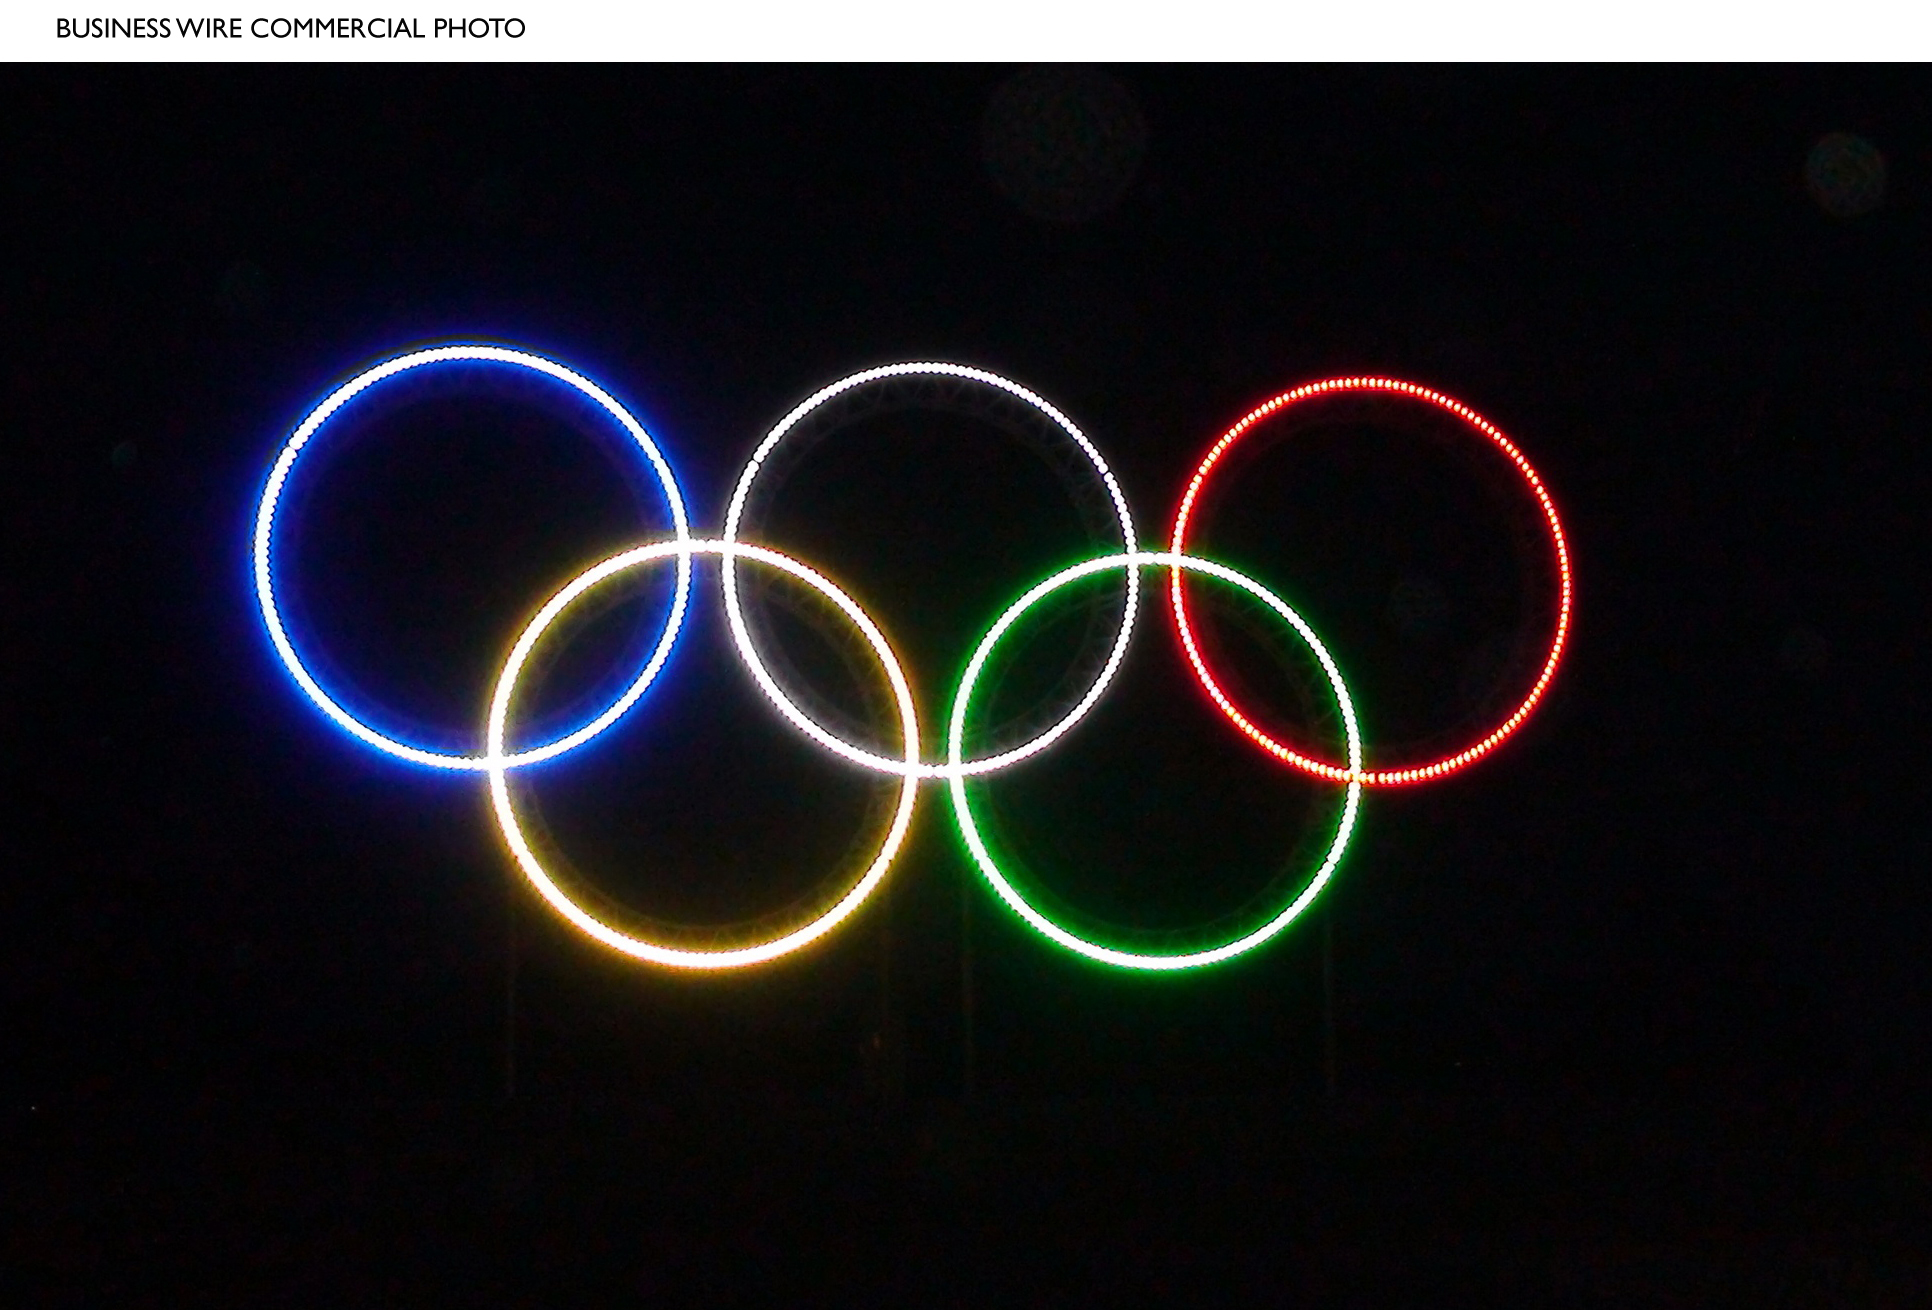 IOC opens bidding process for 2020 Olympics - The Blade Olympic Rings 2020